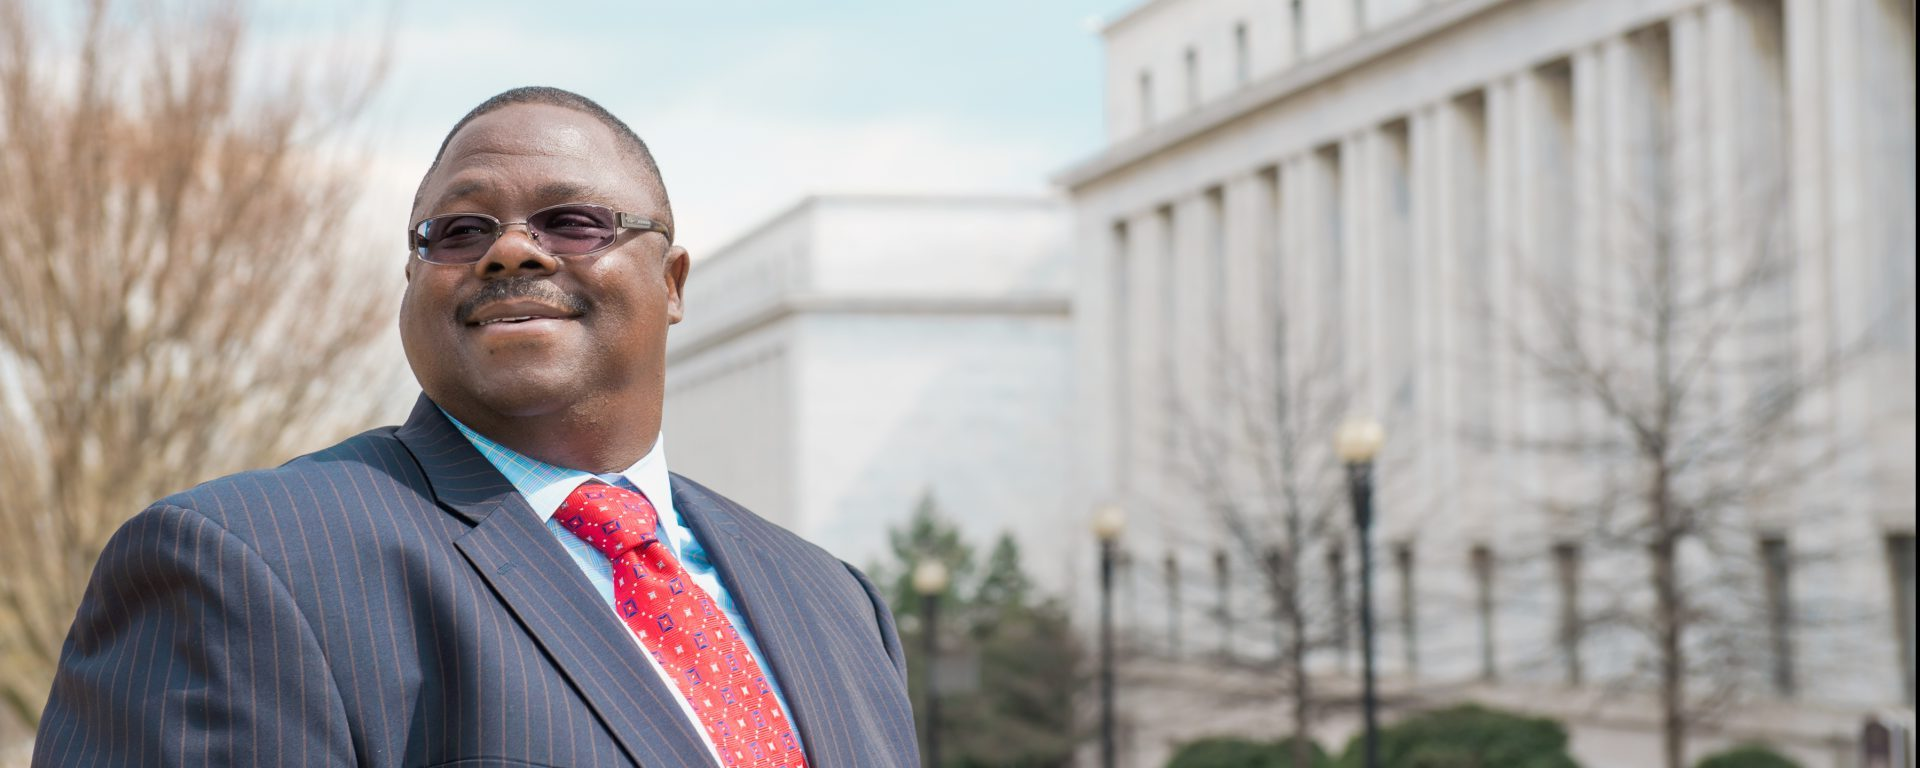 UMBC's Tyson King-Meadows becomes an ACE Fellow, as an emerging national higher ed leader